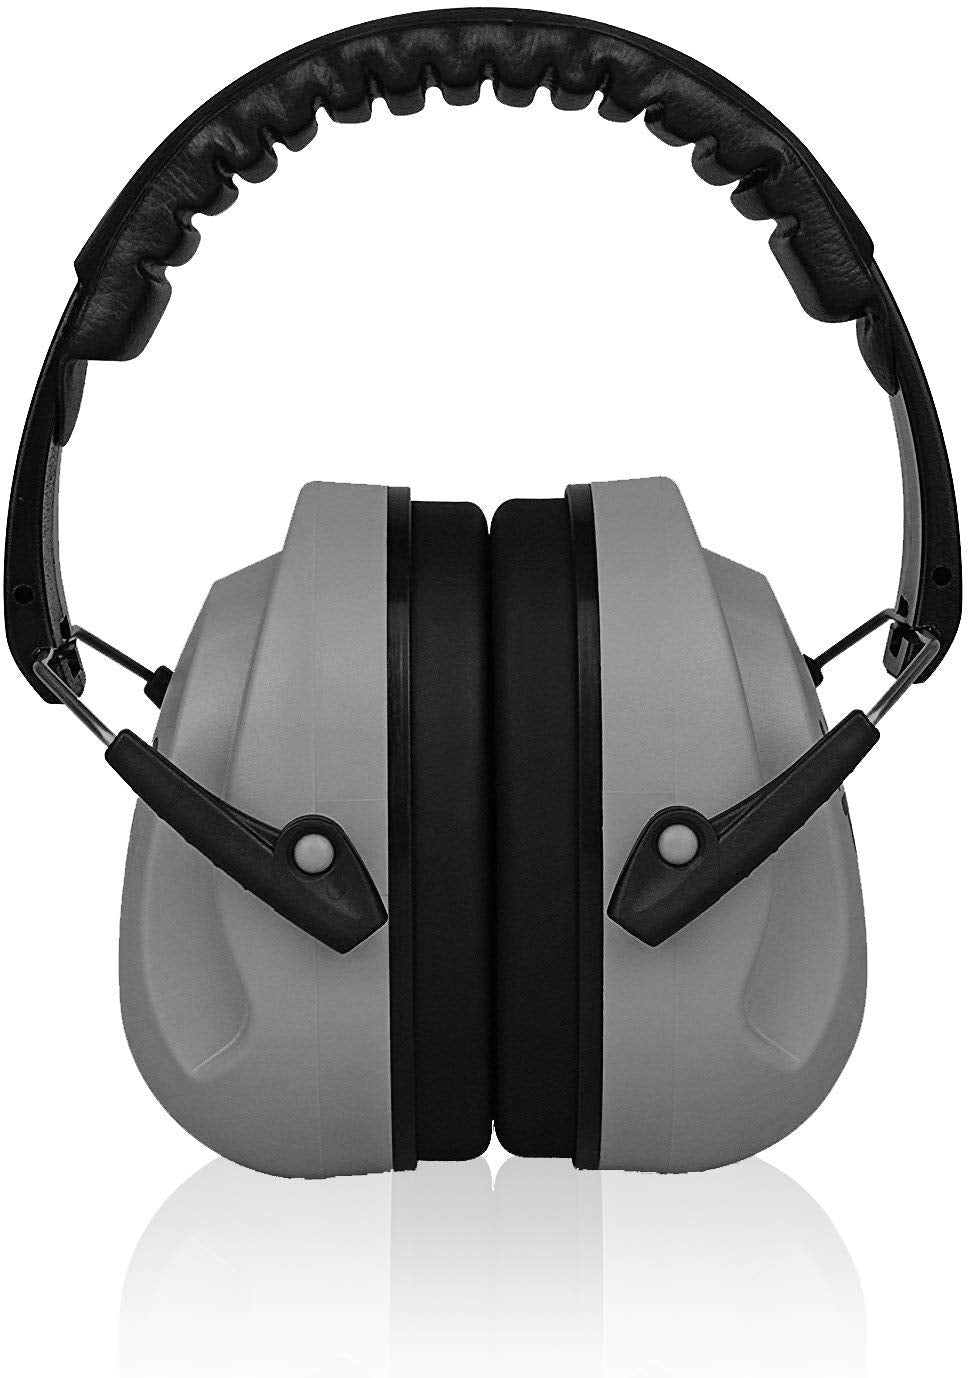 Grey Sammie Earmuffs Hearing Protection with Travel Bag